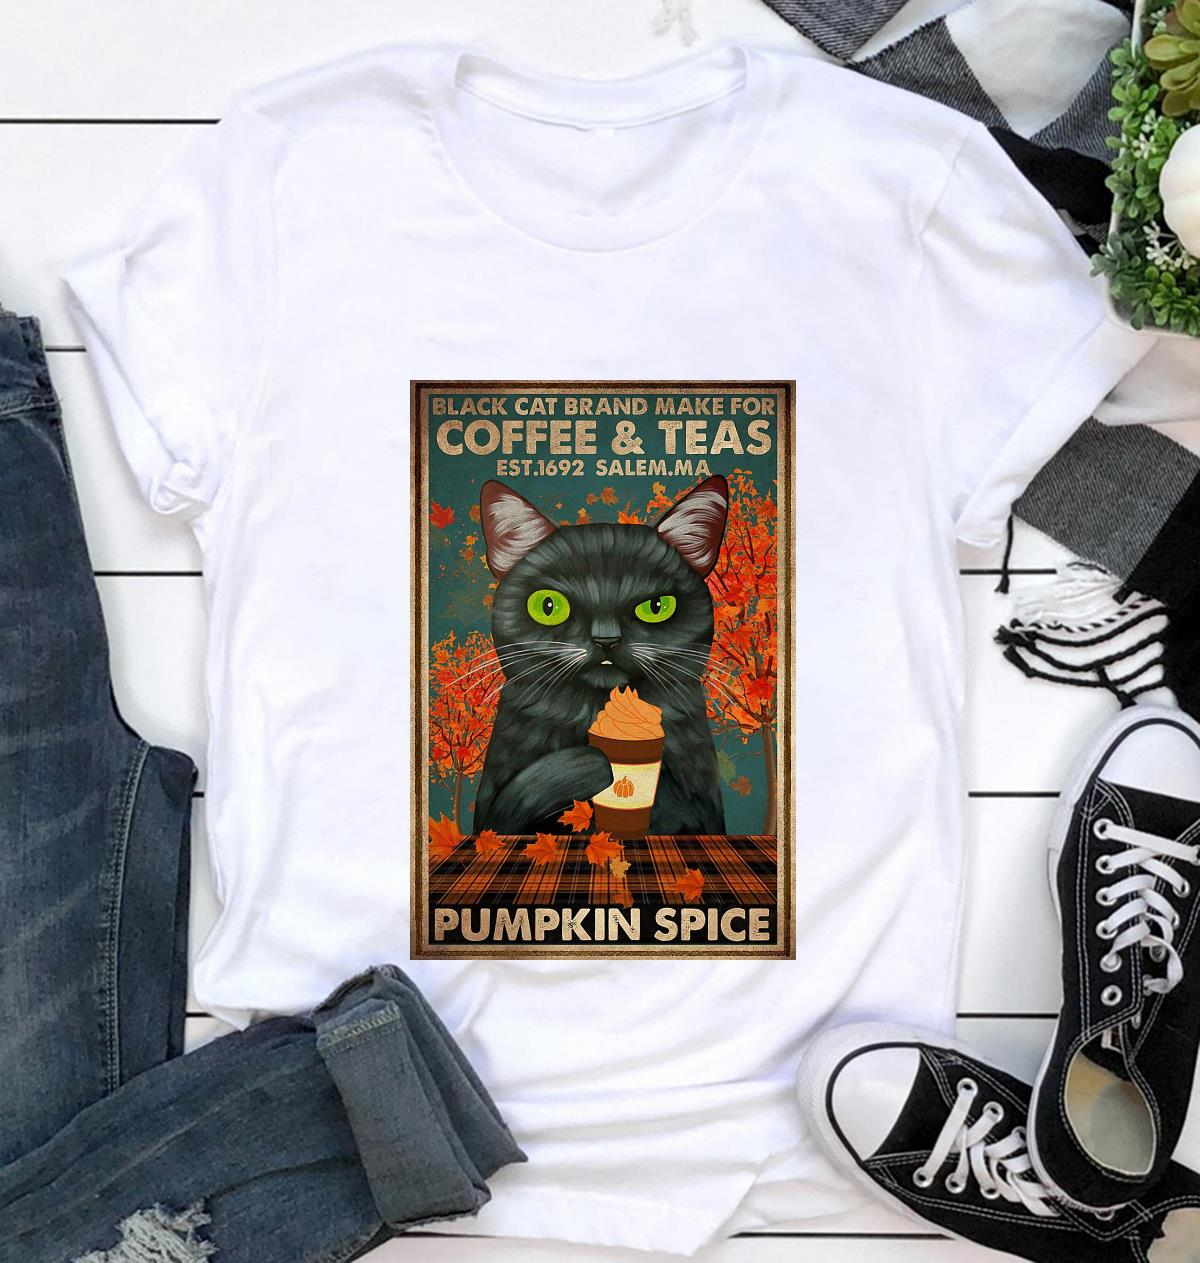 Black cat brand make for coffee and teas poster t-shirt